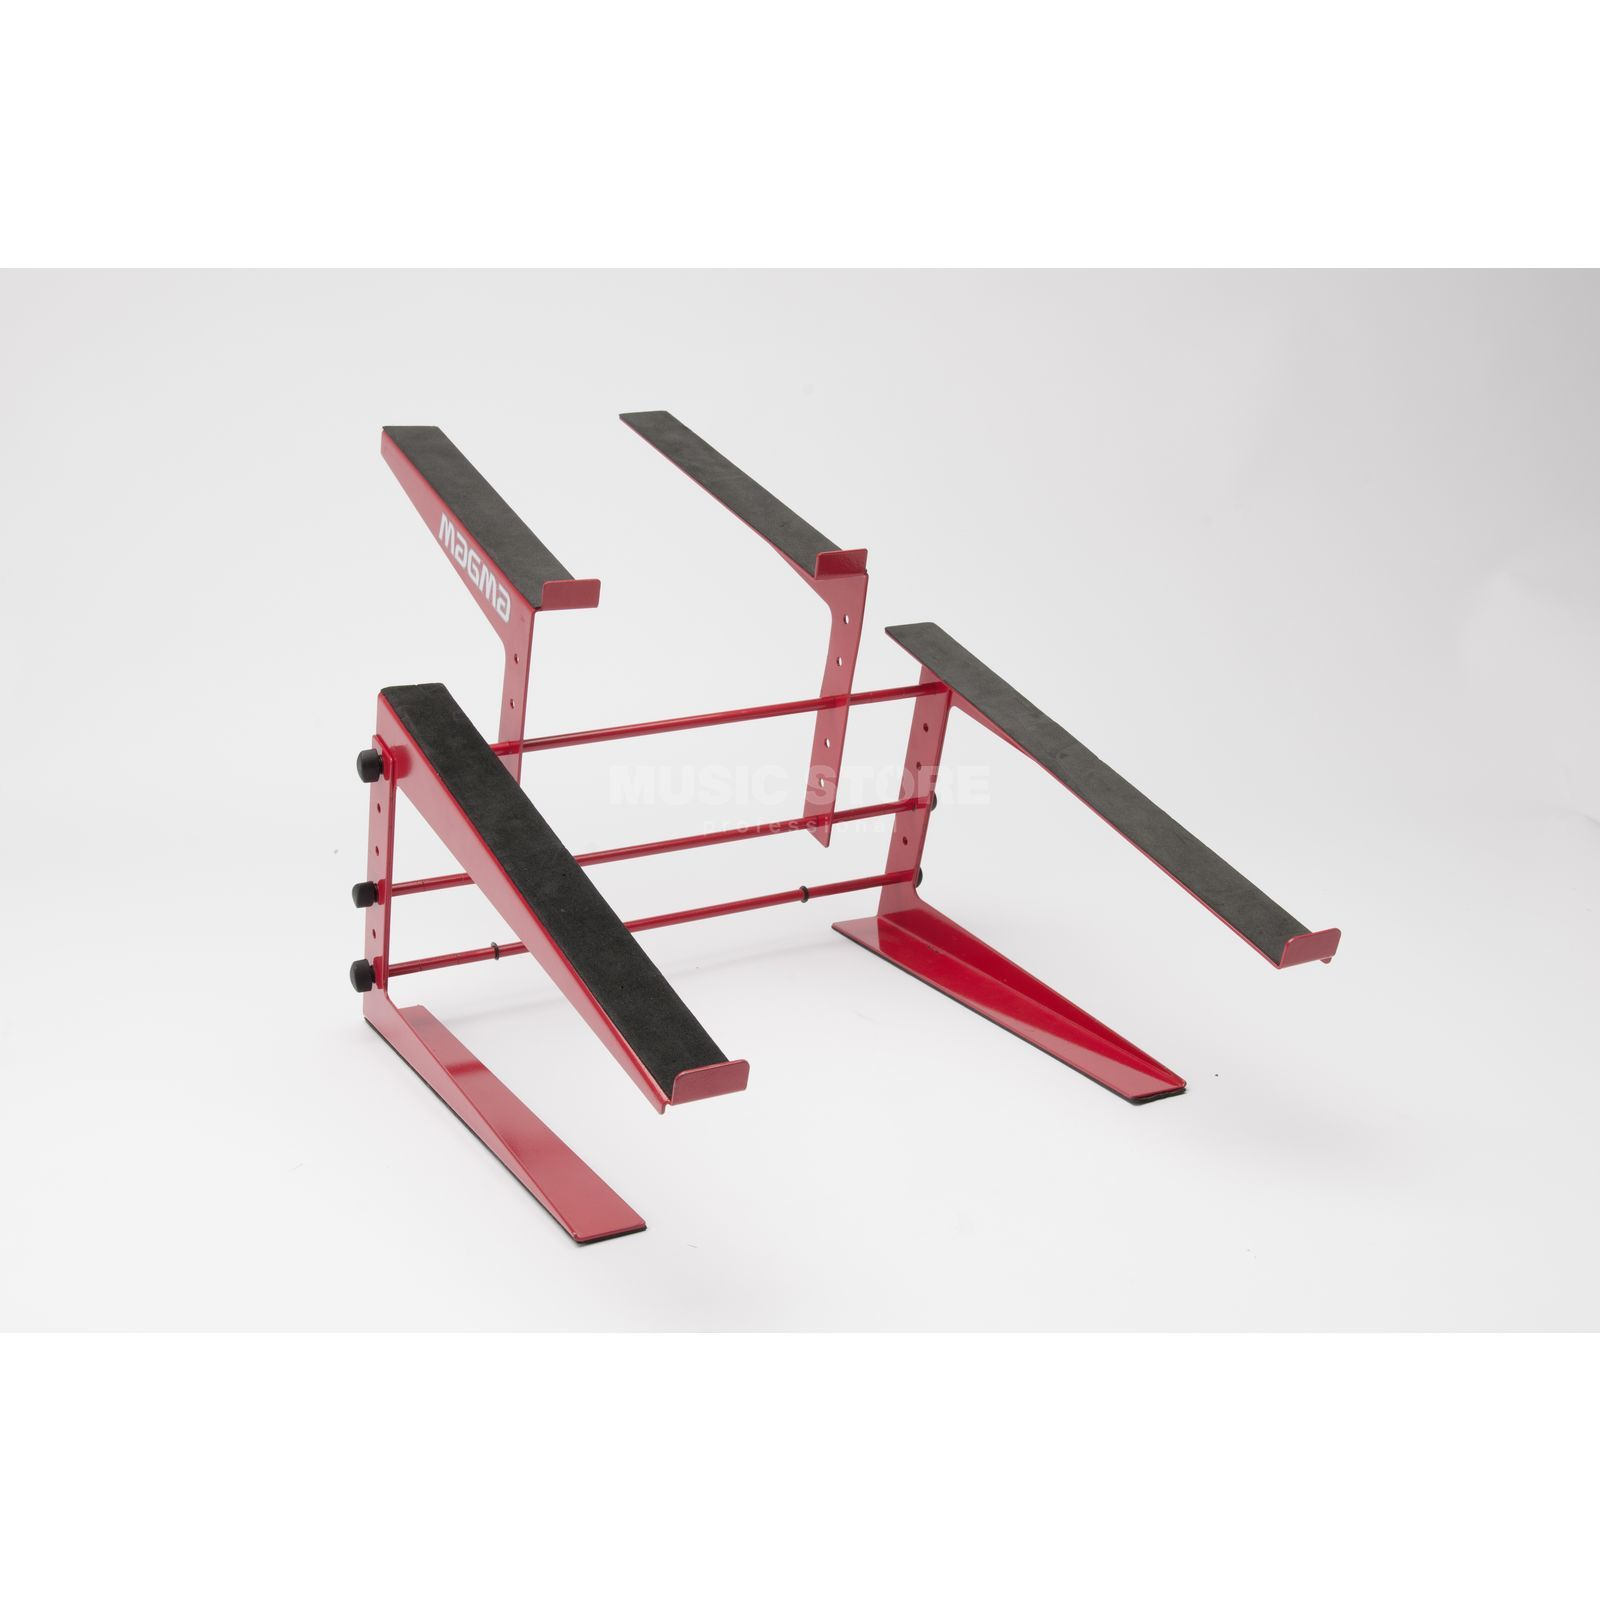 Magma Control-Stand (red) for DJ-Controller and Laptops Product Image